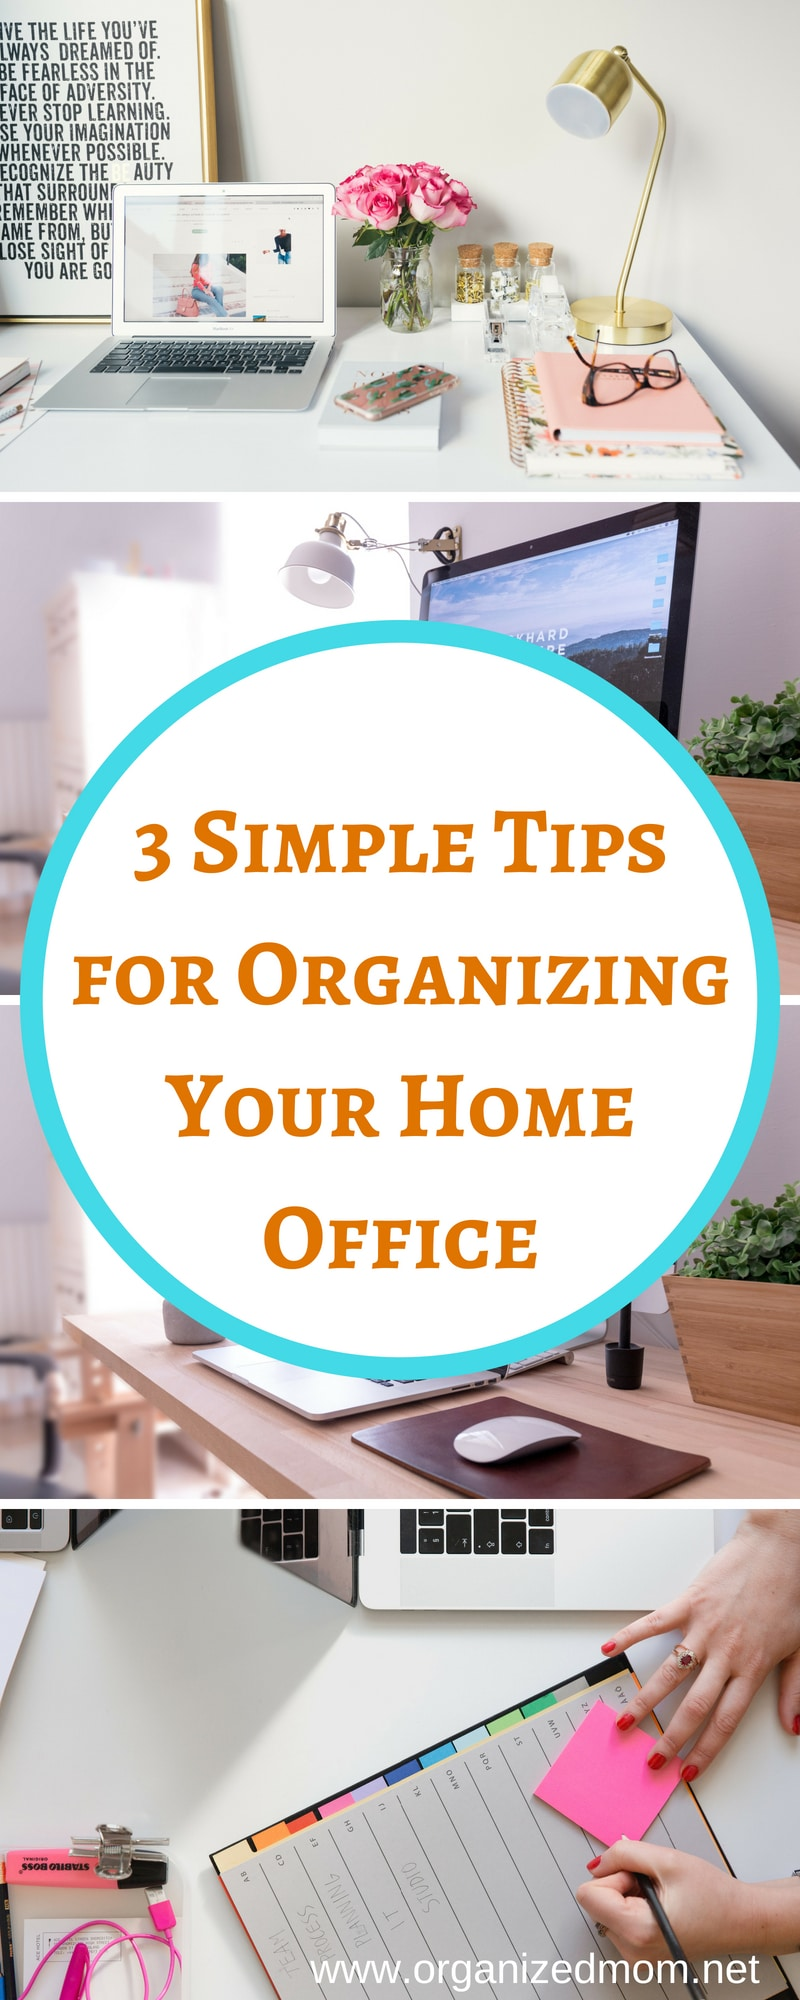 Organize My Home Office in 3 Simple Steps - The Organized Mom